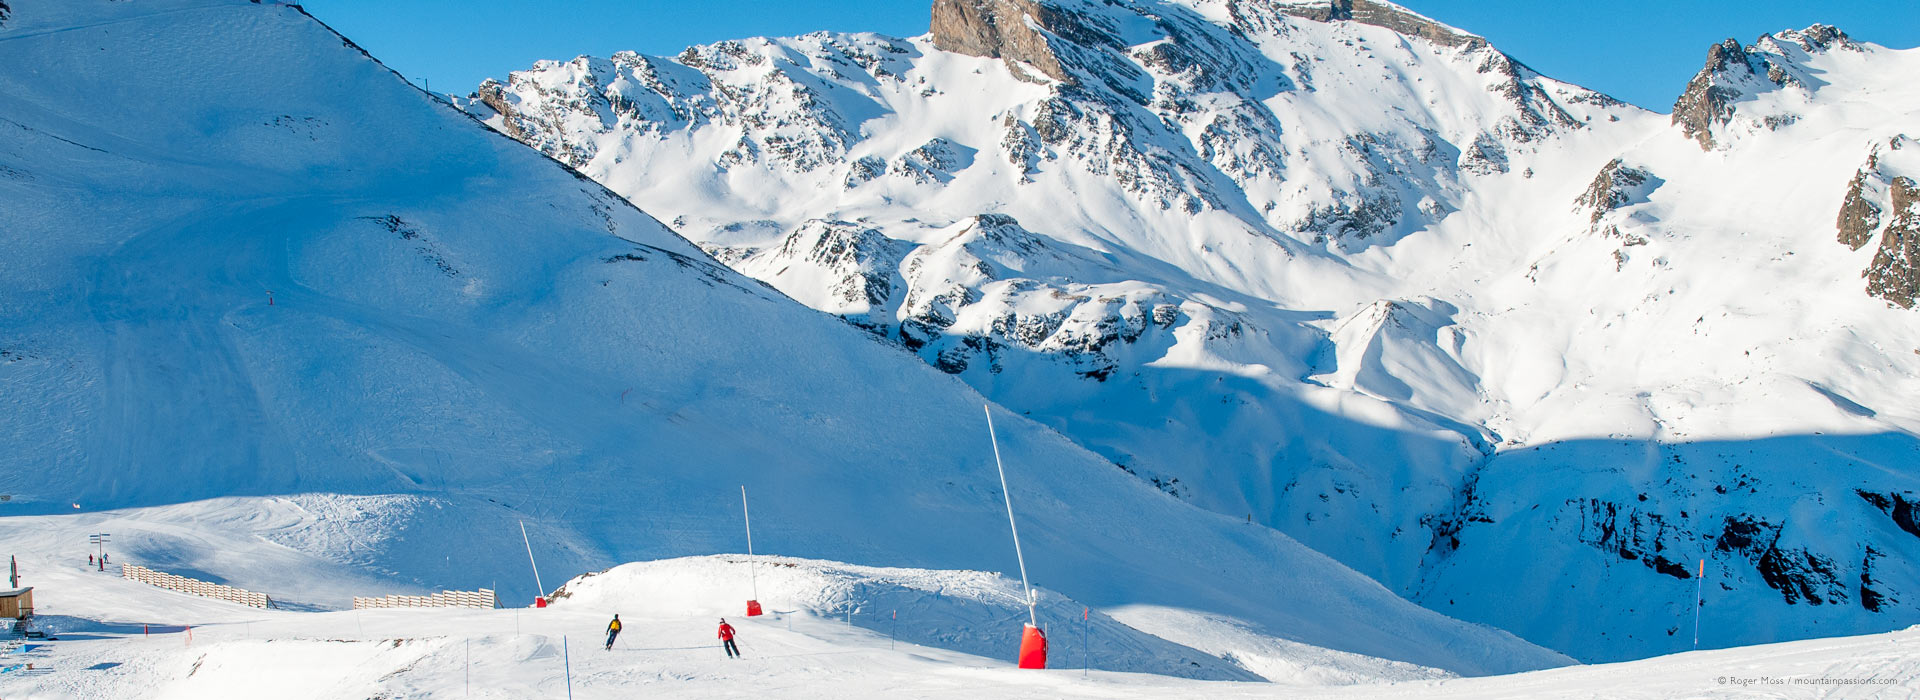 Wide view of mountains with skiers on piste above Piau Engaly.